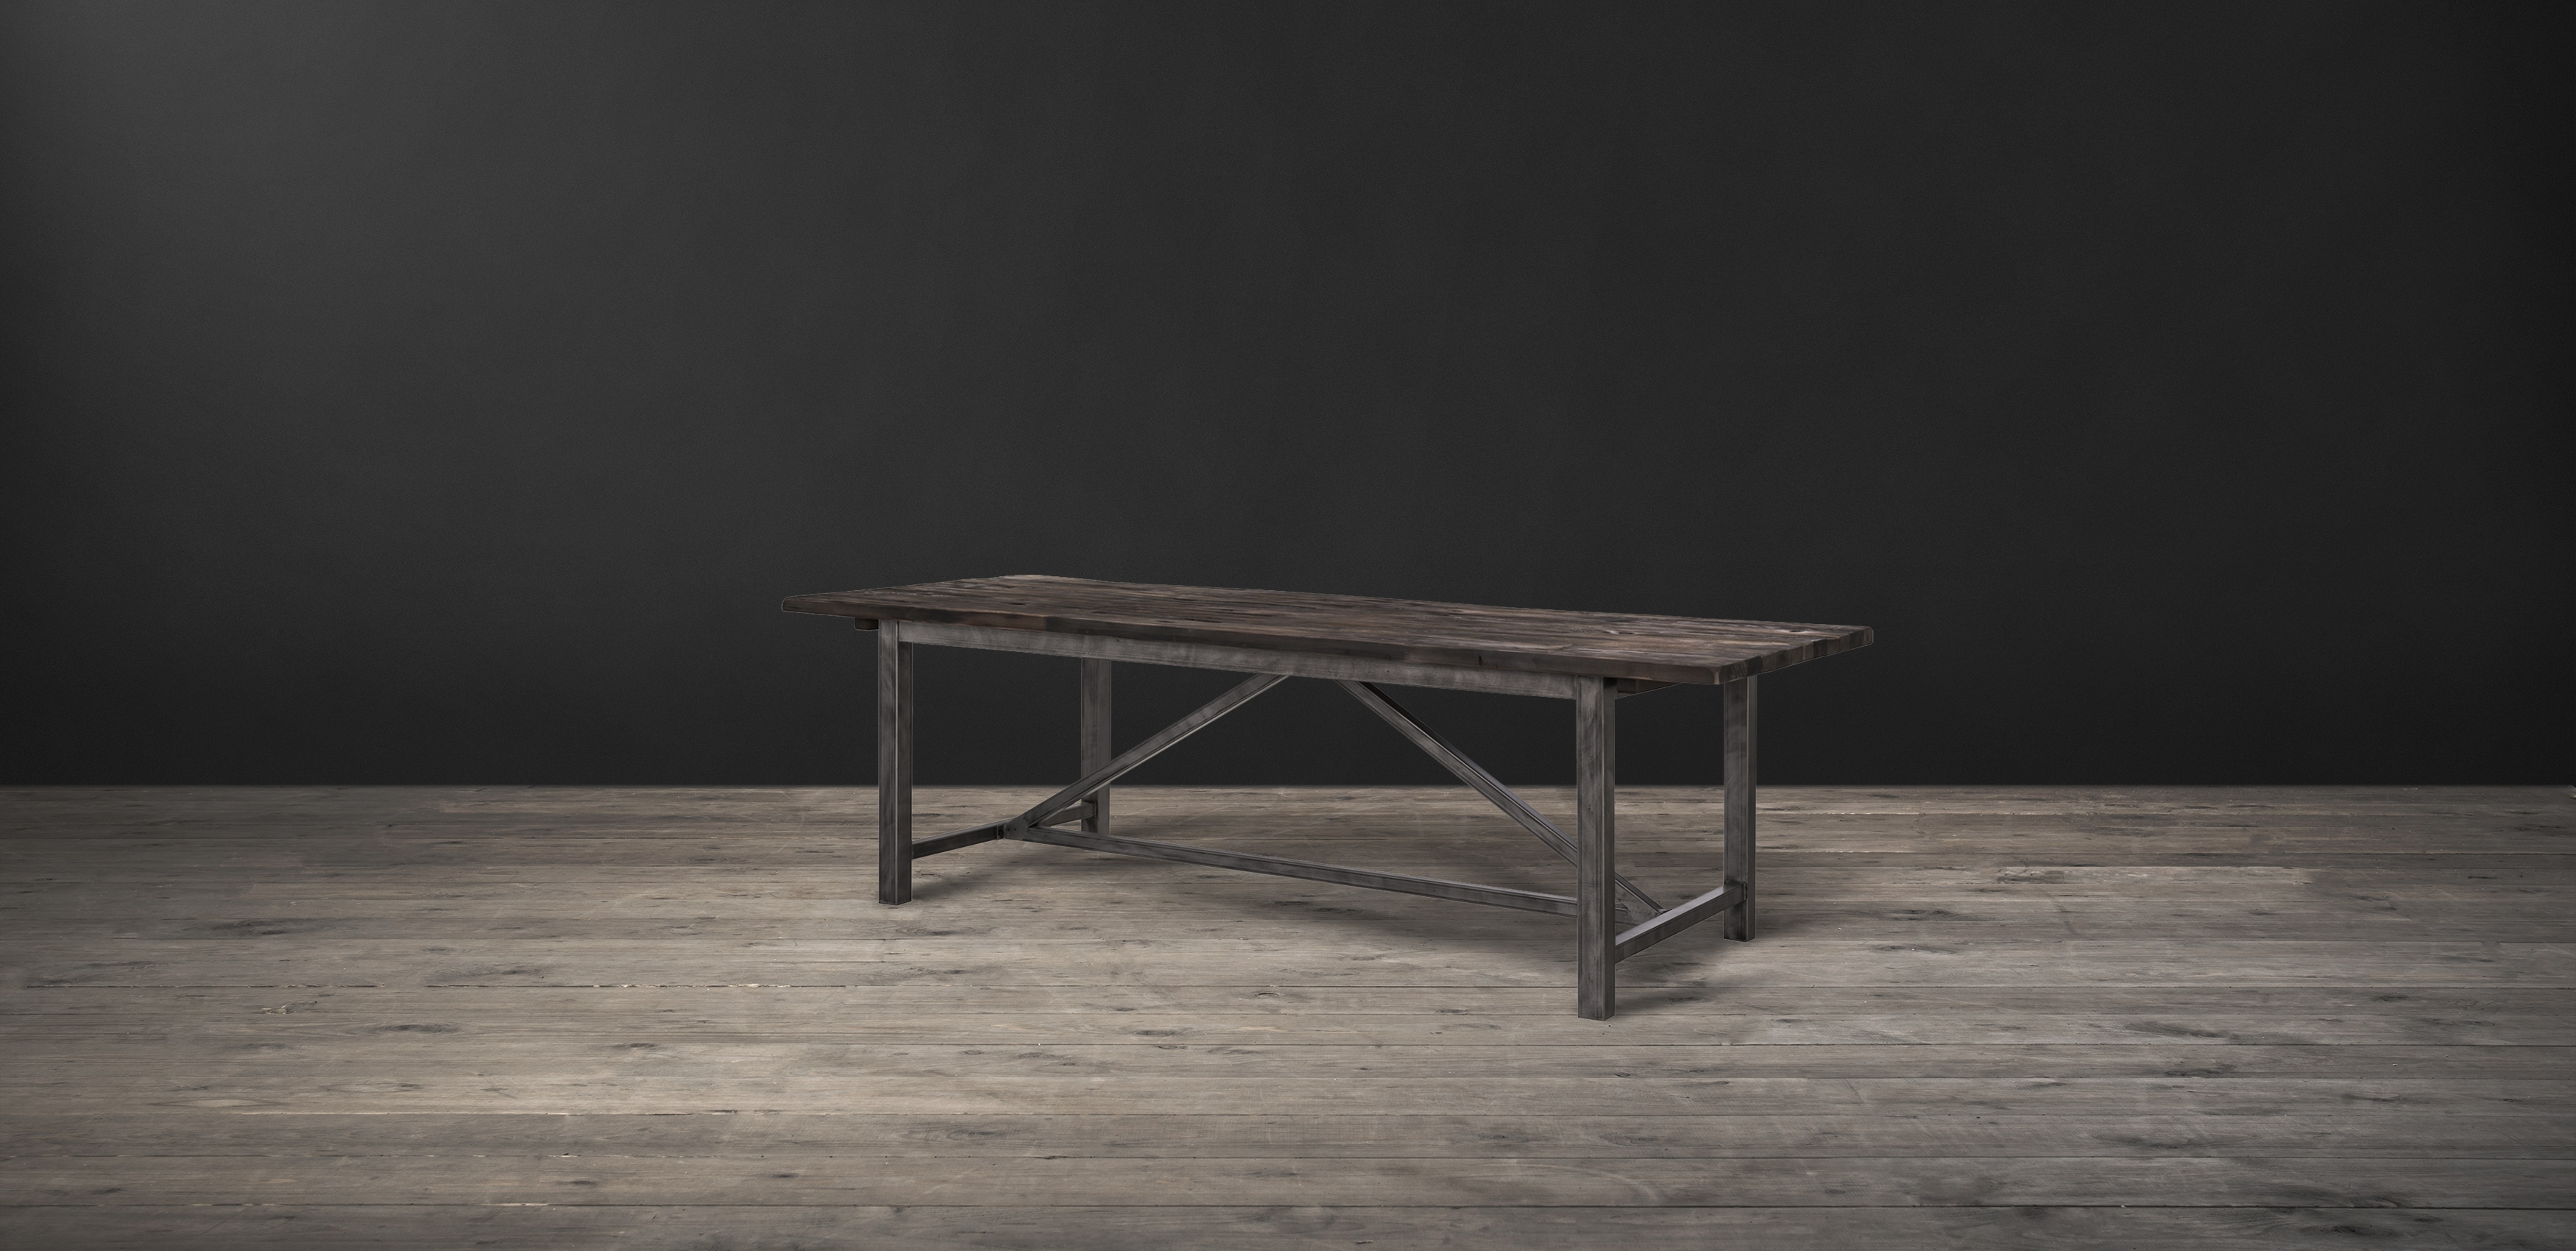 Parquet Dining Tables With Most Up To Date Dining Tables – Axel Parquet (View 11 of 25)